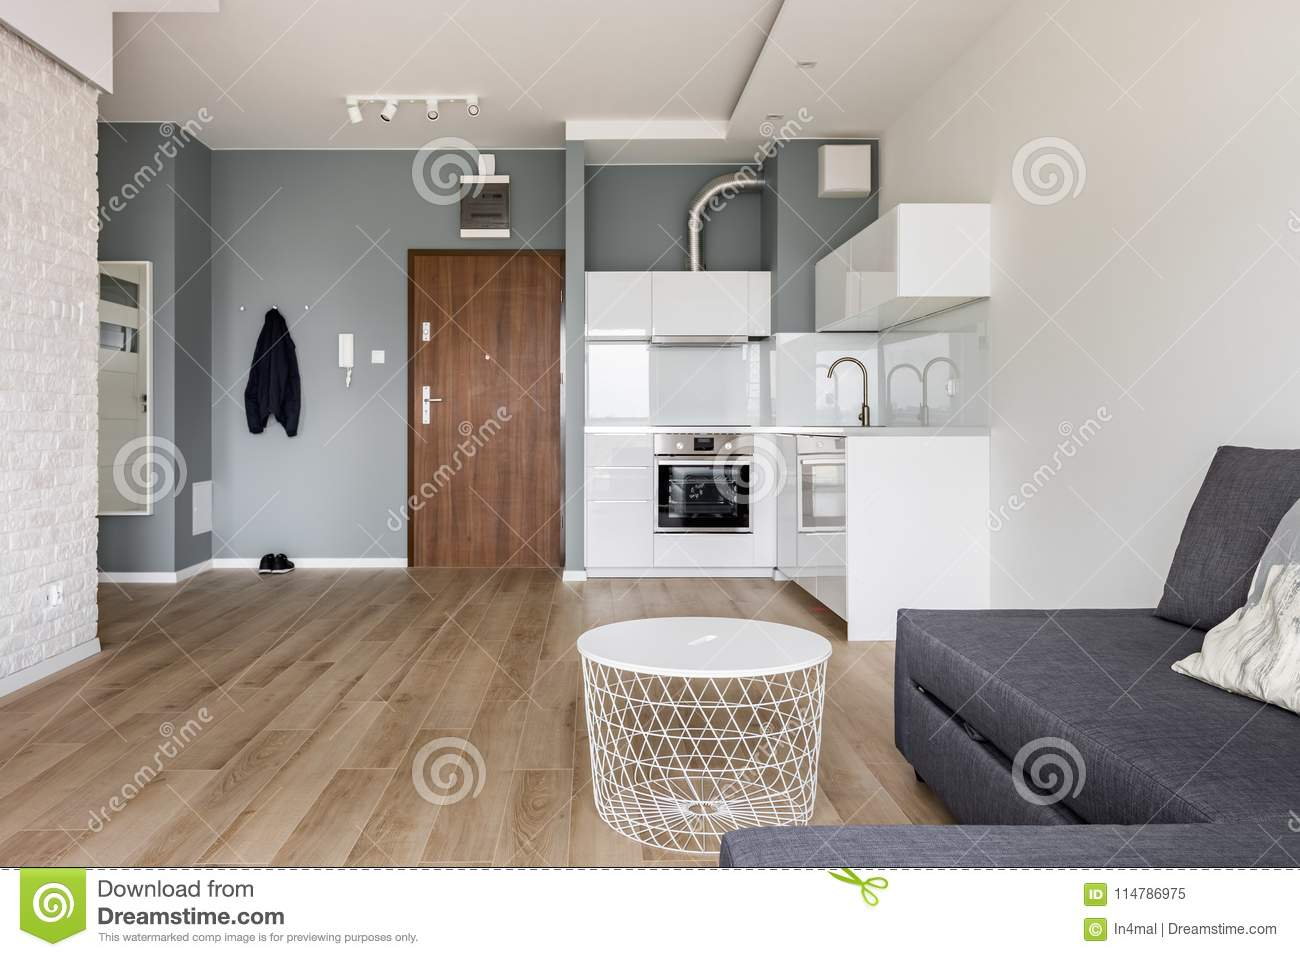 Studio flat with small kitchen